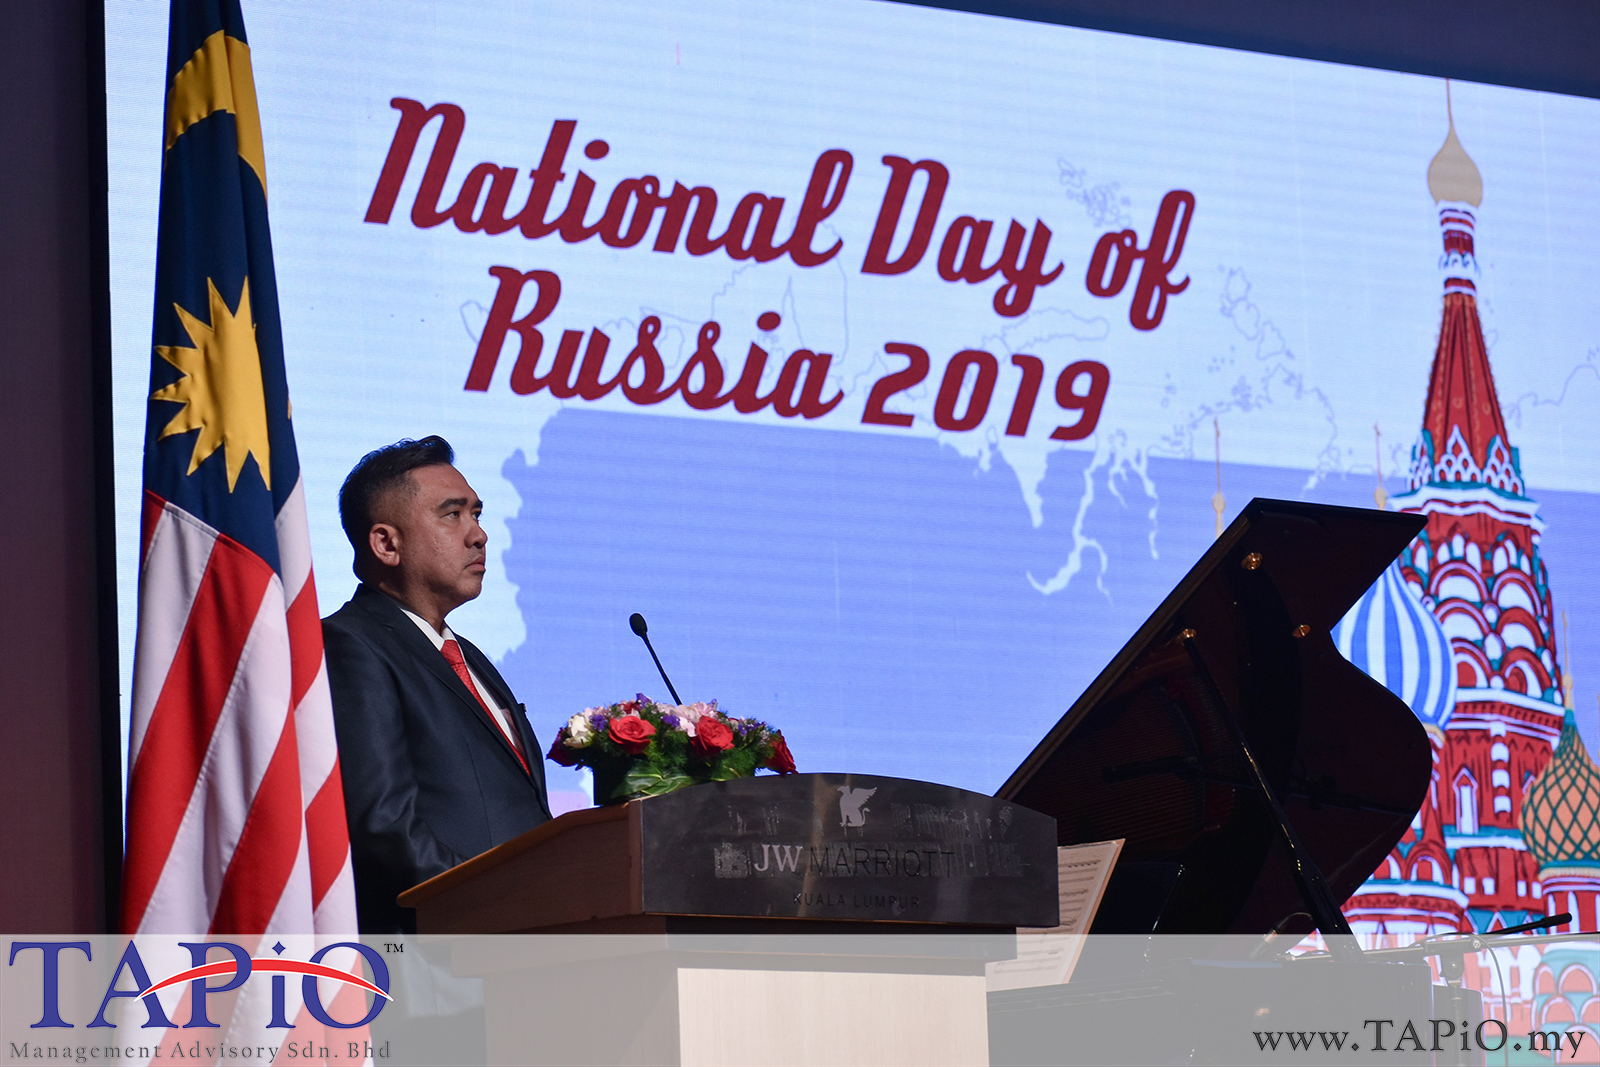 20190614 - National Day of Russia 2019